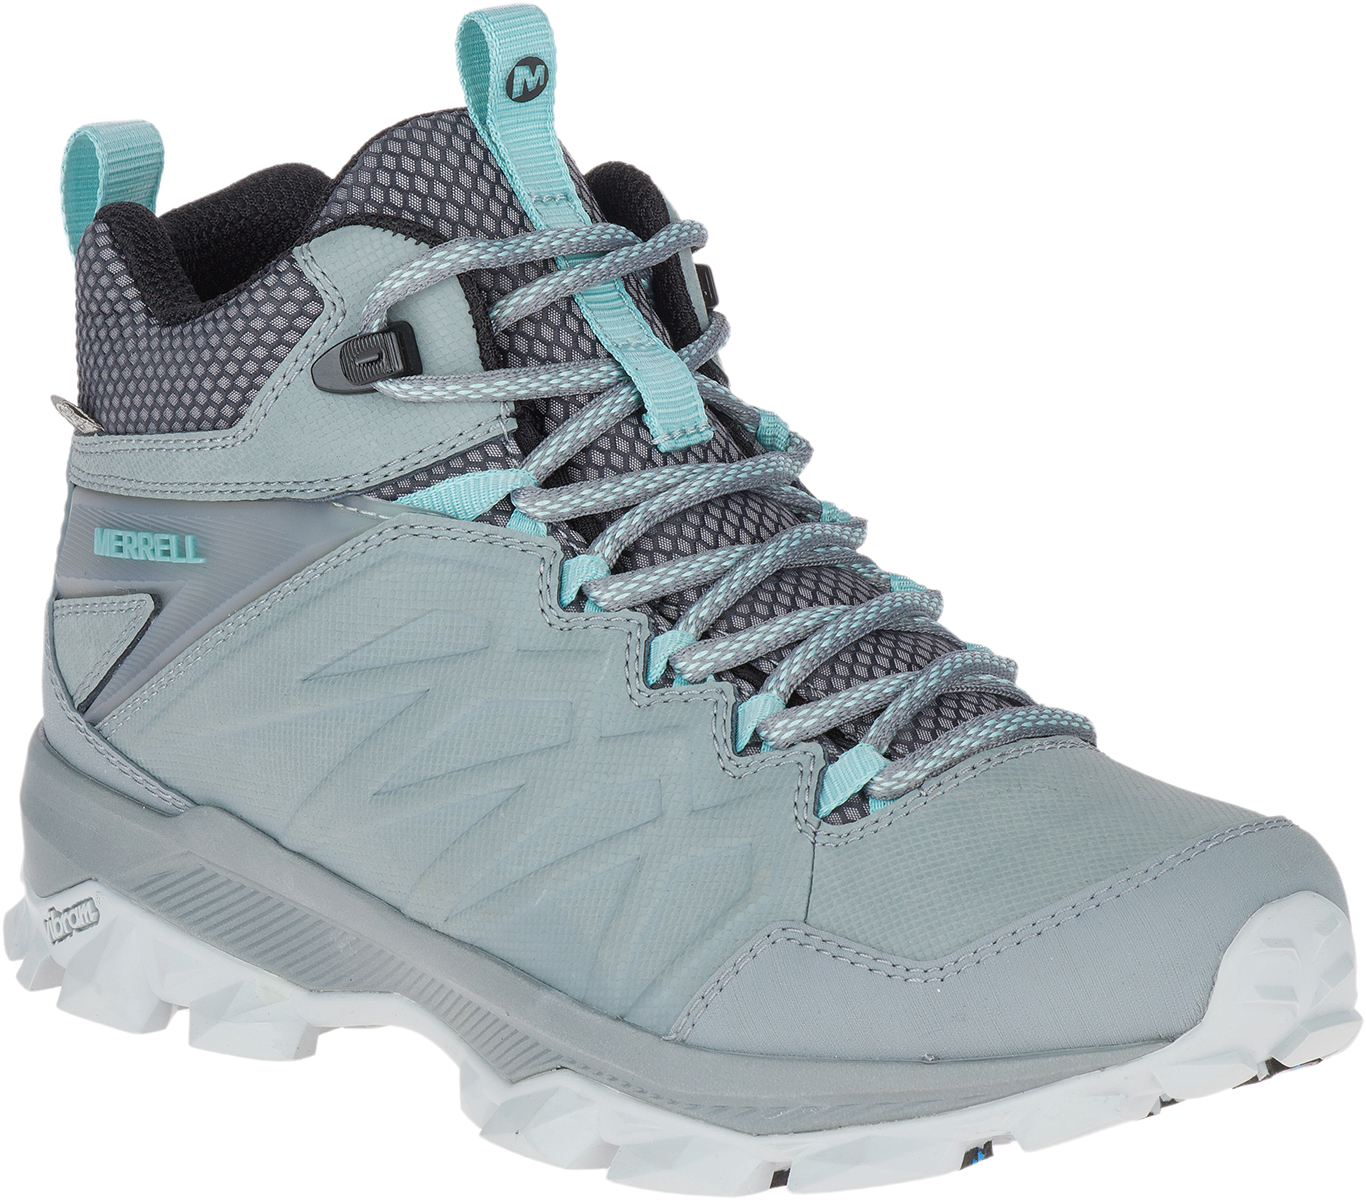 a159f2a5c424 ... wiggle merrell women s thermo freeze 6 waterproof shoes boots ...